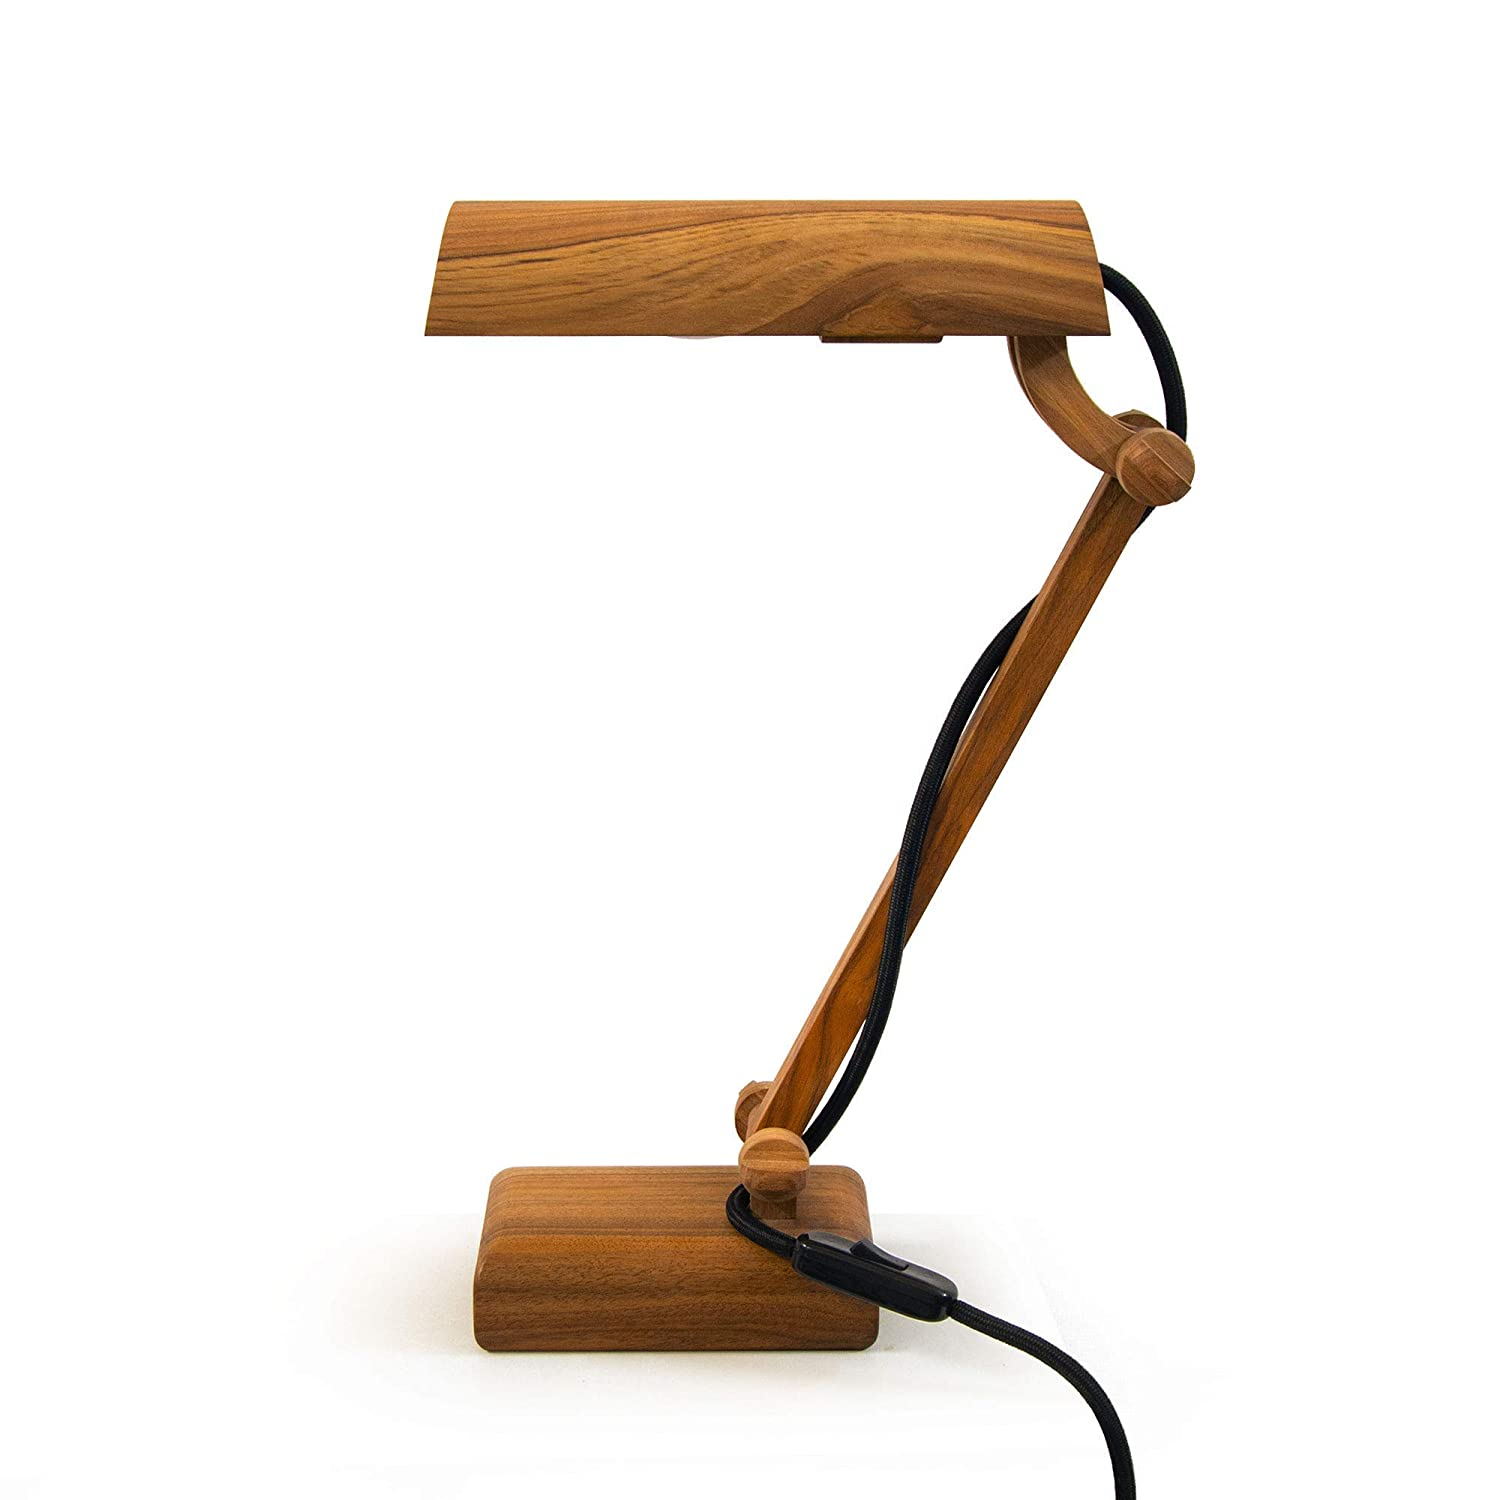 Vinkli - table lamp Ranking integrated 1st place made of adjustments oak. Two allow points Max 50% OFF